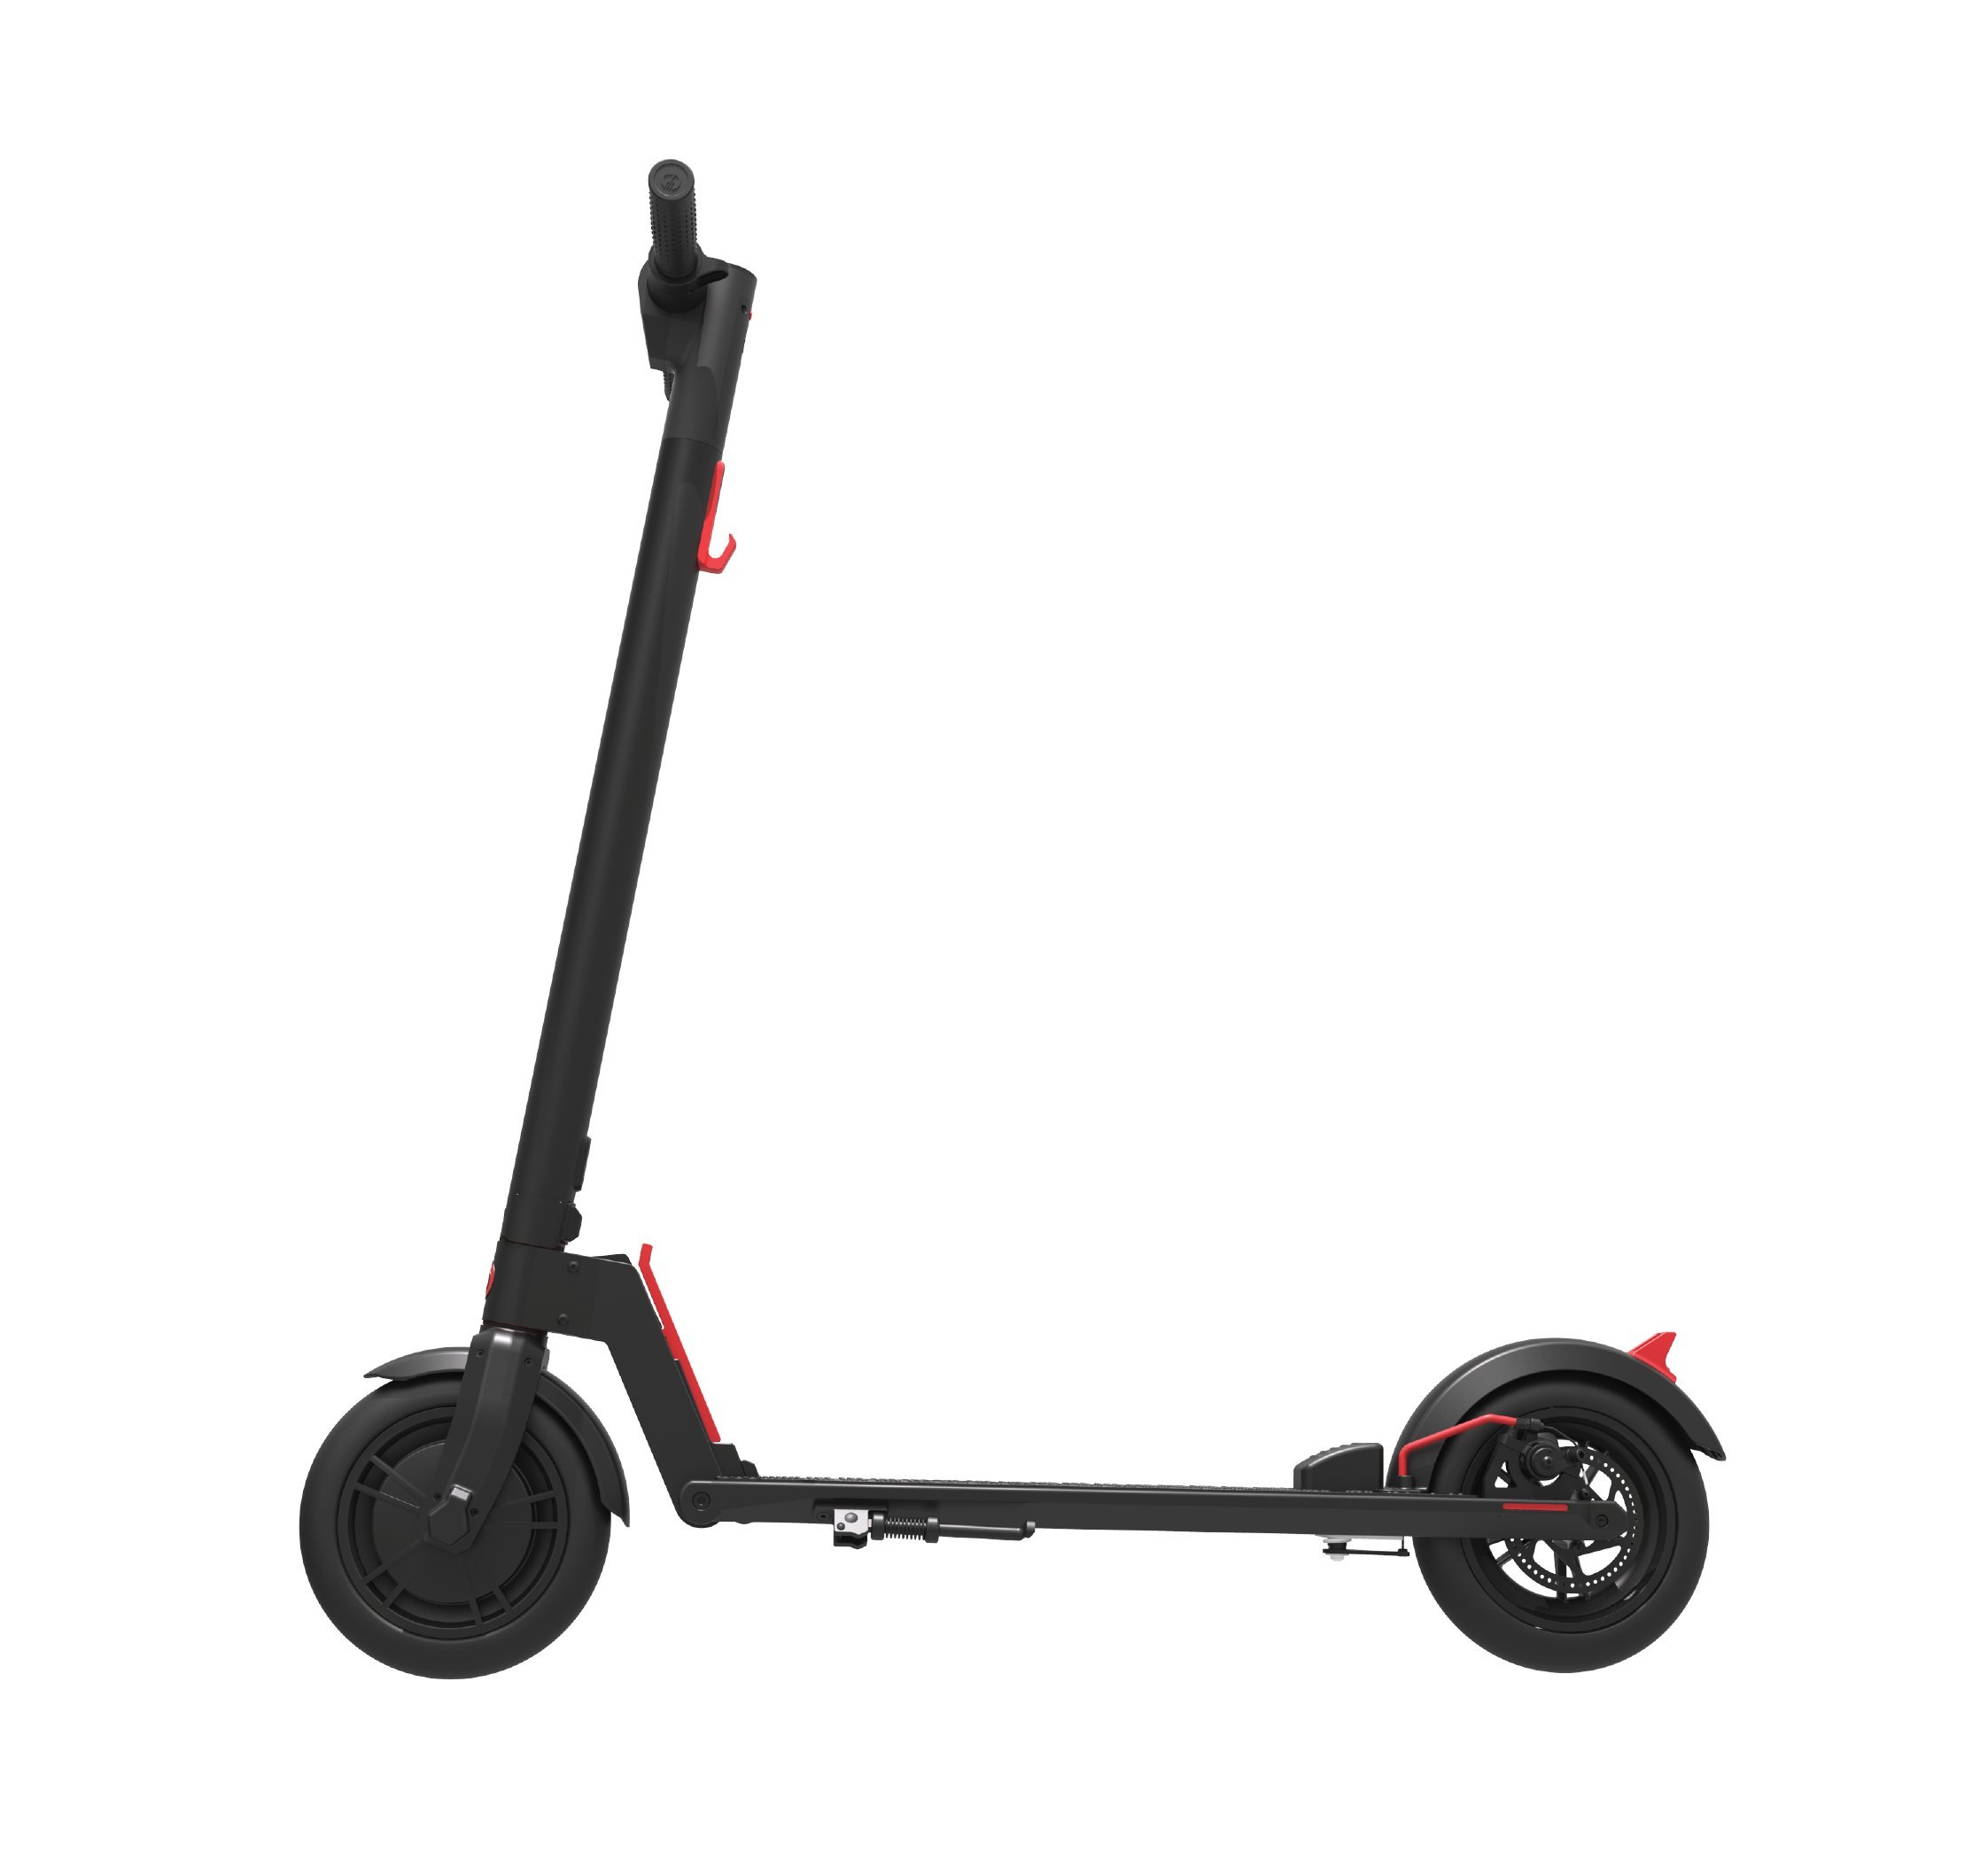 GOTRAX GXL Commuting Electric Scooter - 8.5'' Air Filled Tires - 15.5MPH & up to 12mile Range (Black) by GOTRAX